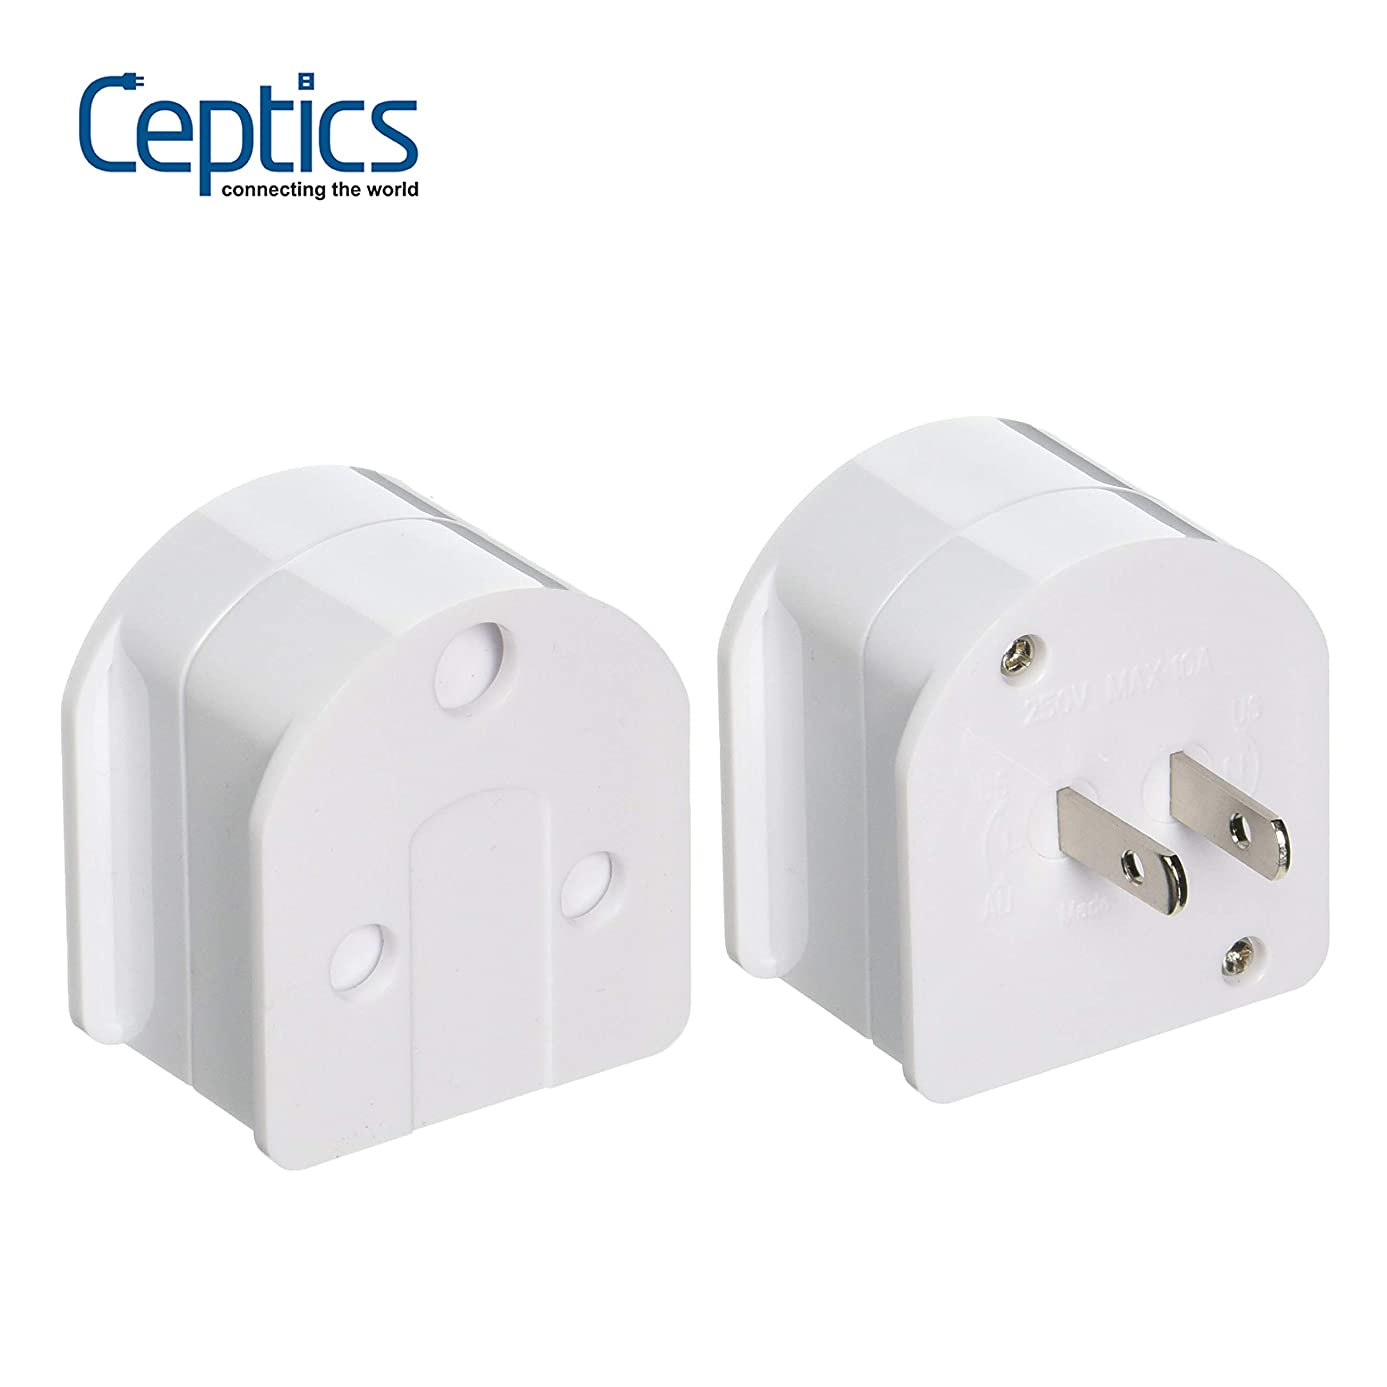 Ceptics SA-US-AU South Africa to USA/Australia Plug Adapter (250V - Max 10A)